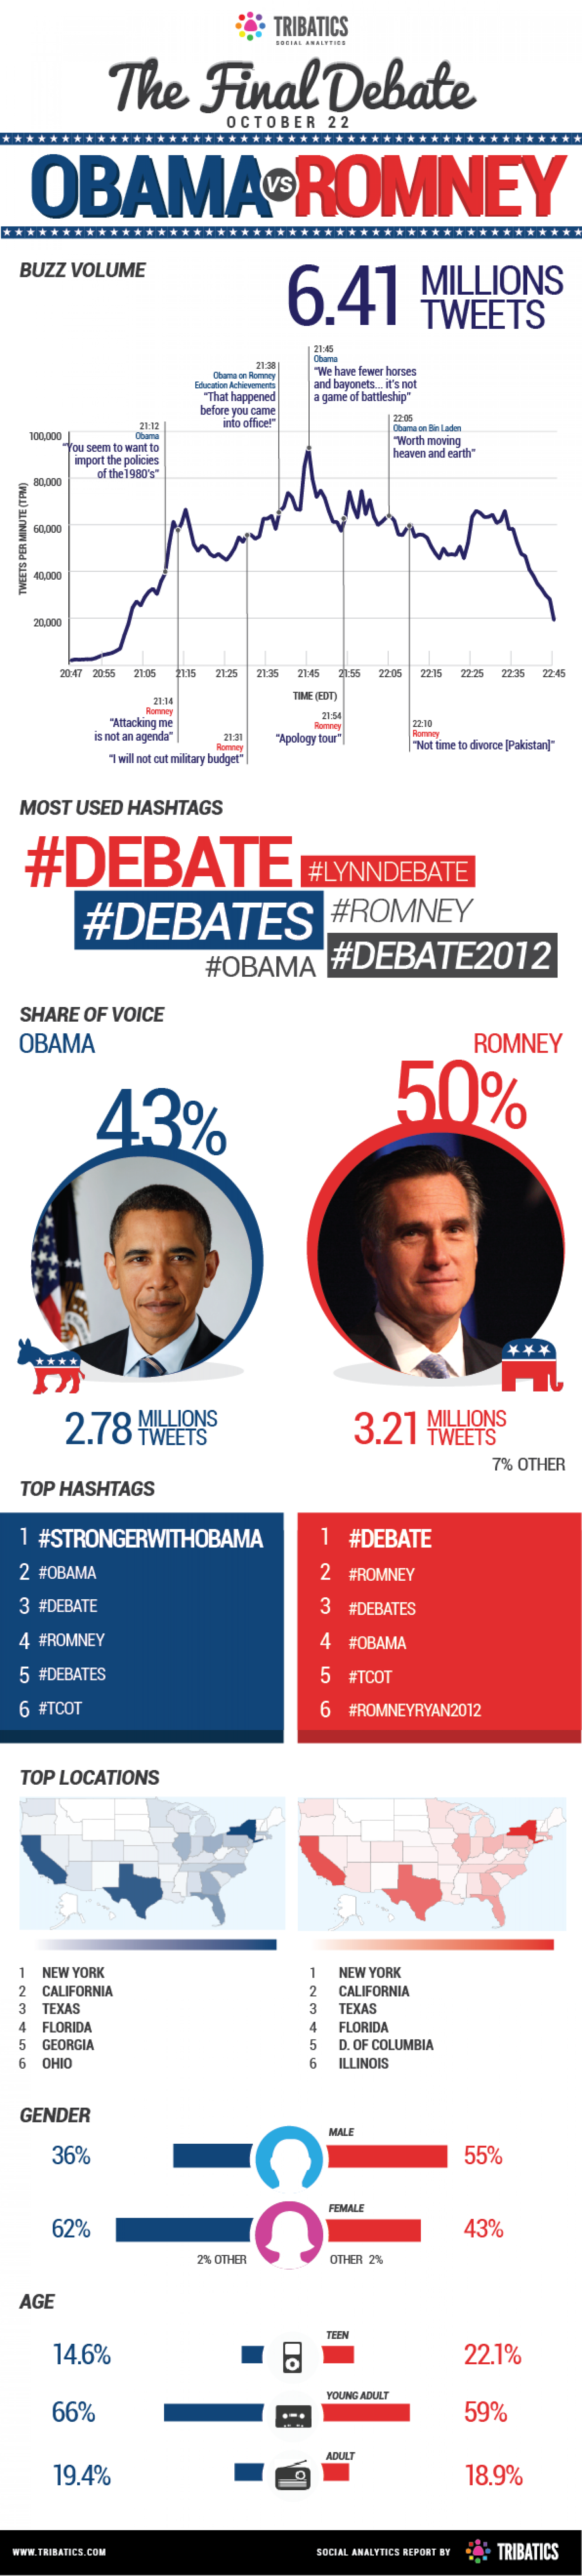 The Final Debate - Obama vs Romney Infographic